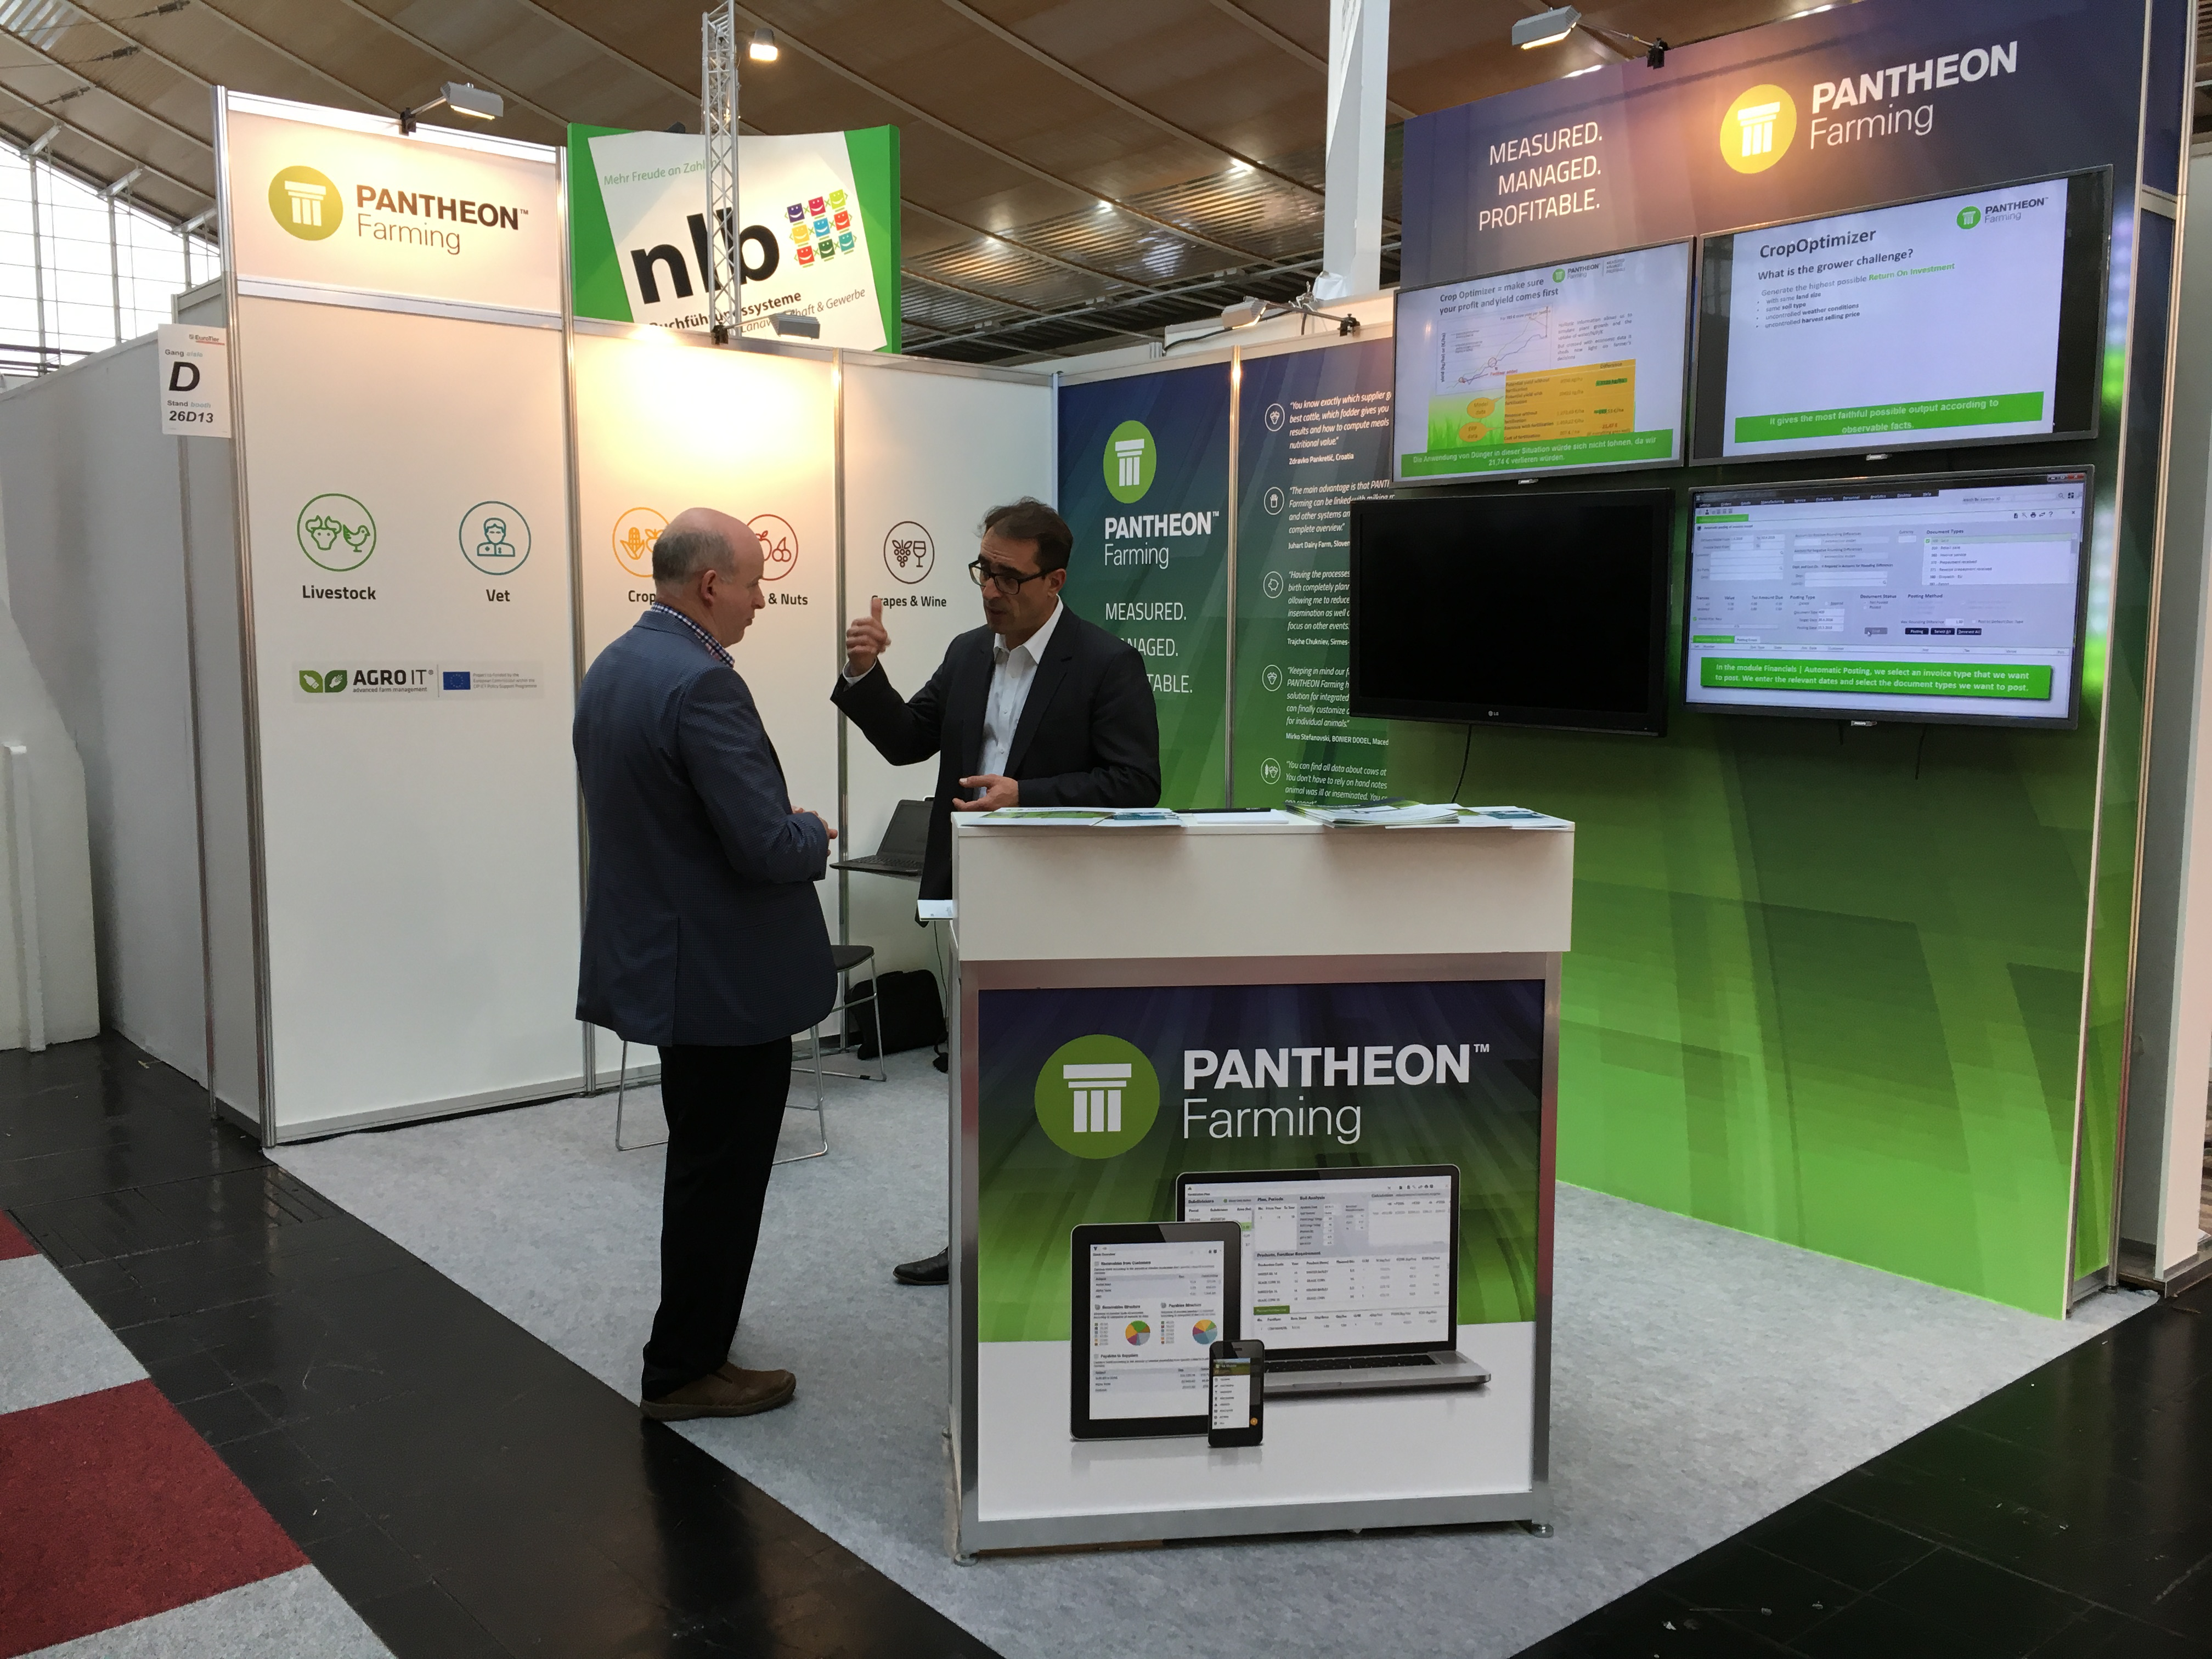 PANTHEON Farming at Eurotier 2016, the world leading trade fair for animal production